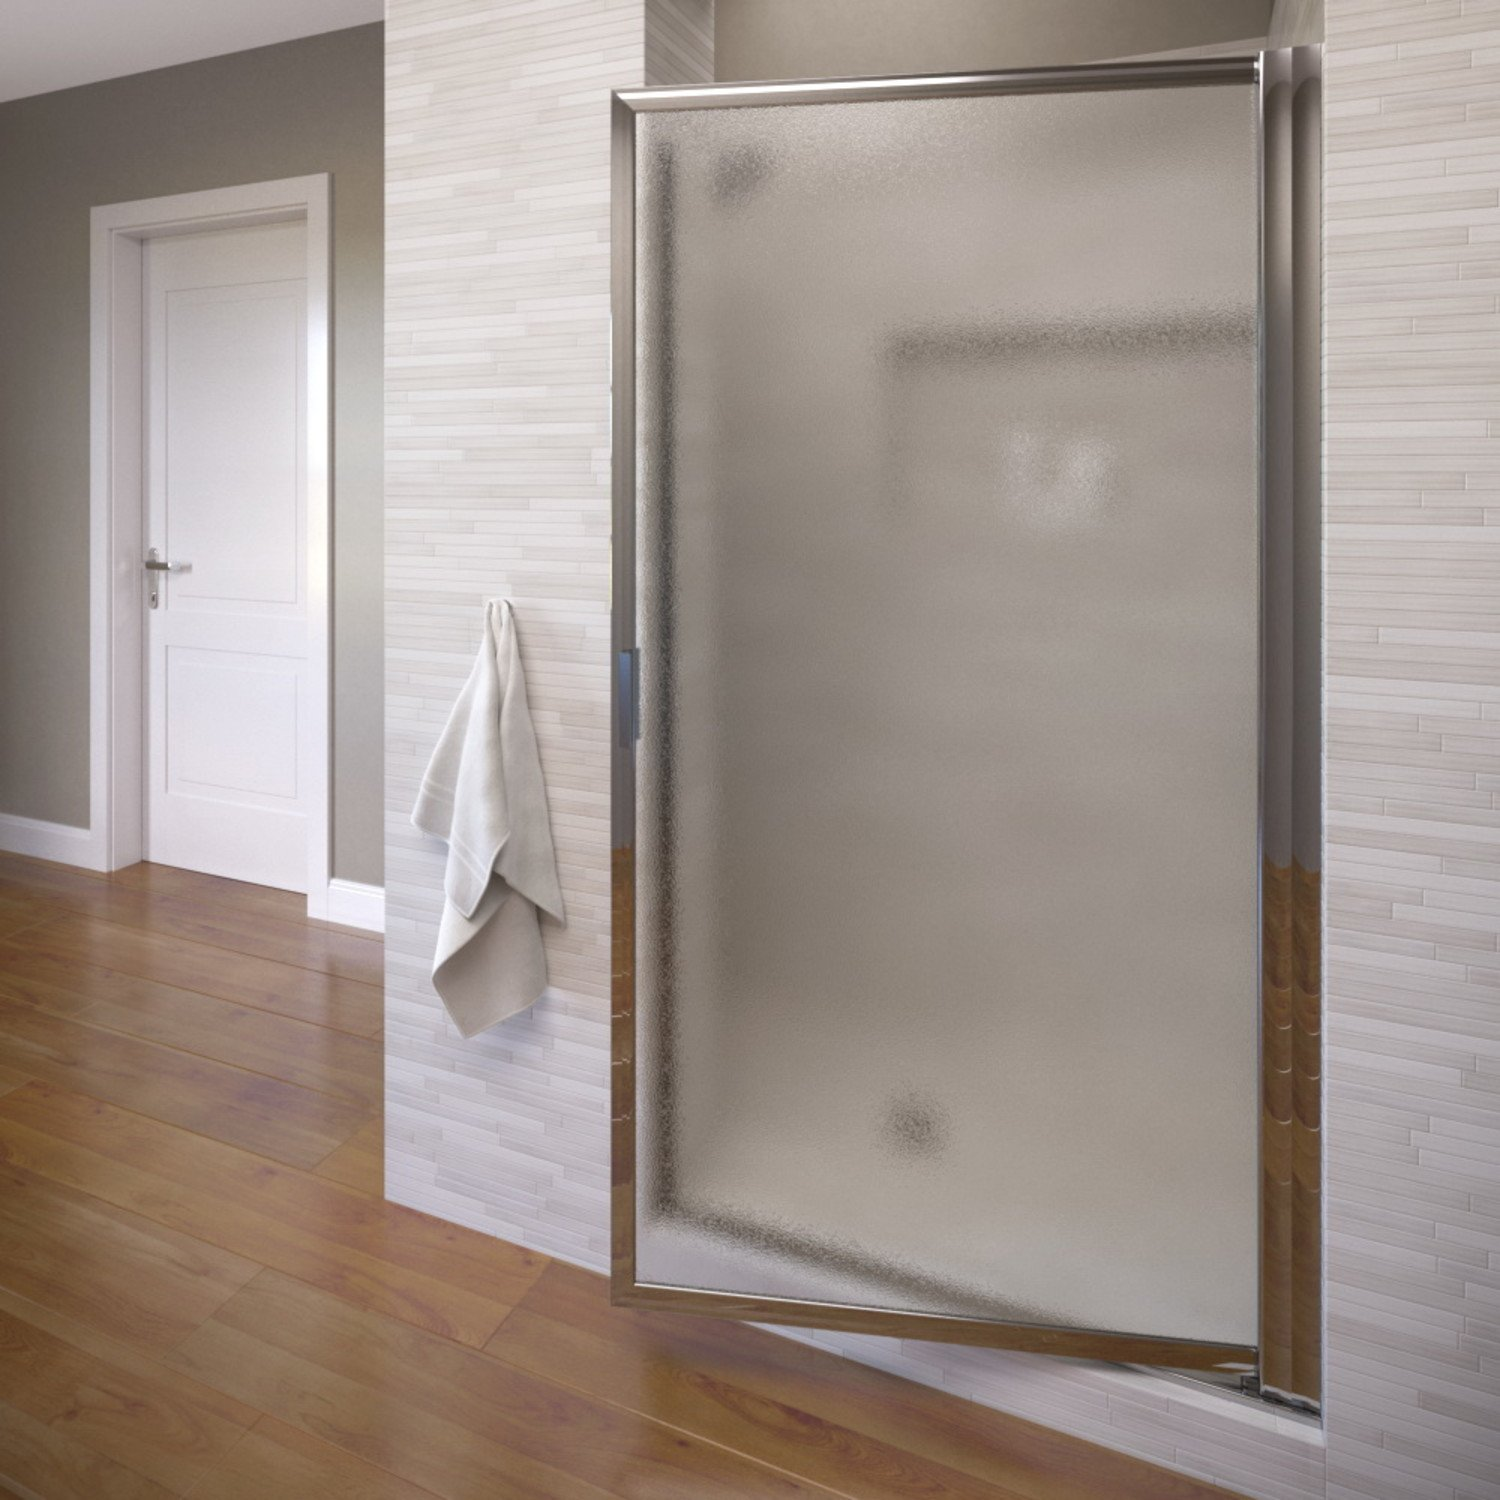 Basco Sopora 27.75- 29.5 in. Width, Pivot Shower Door, Obscure Glass, Chrome Finish